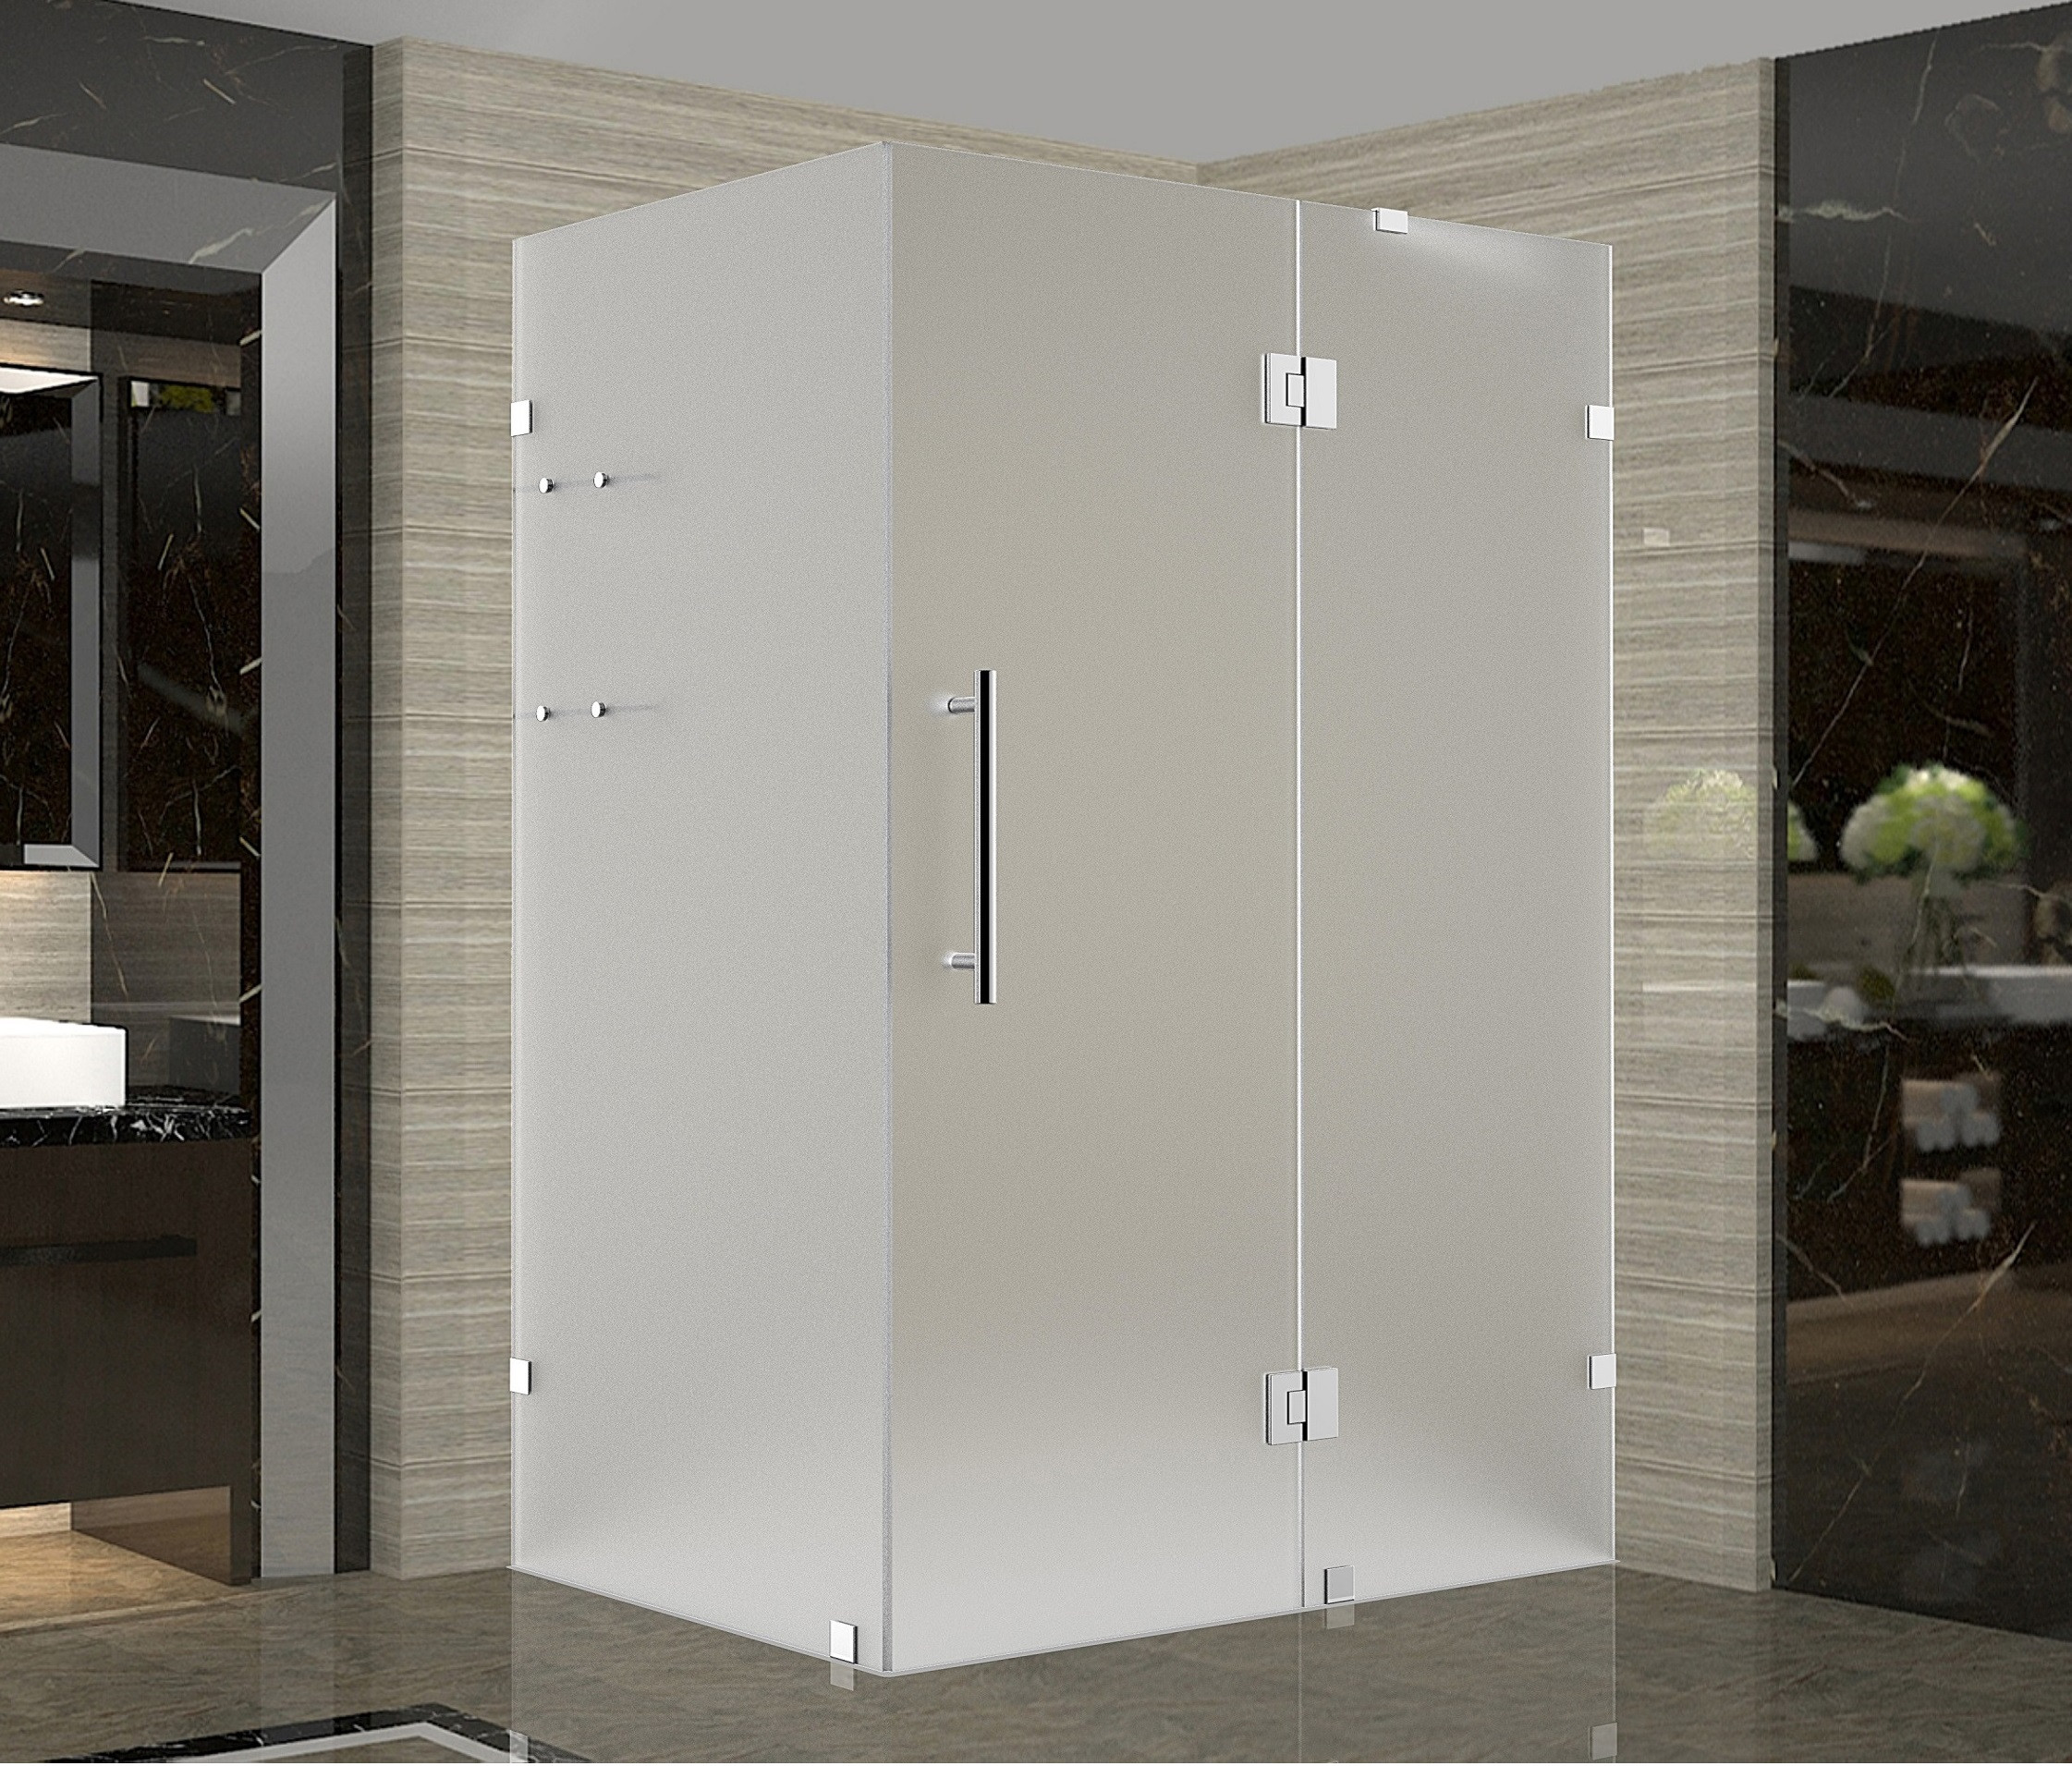 Aston Global SEN992F-CH-4036-10 Chrome Completely Frameless Frosted Shower Enclosure with Shelves